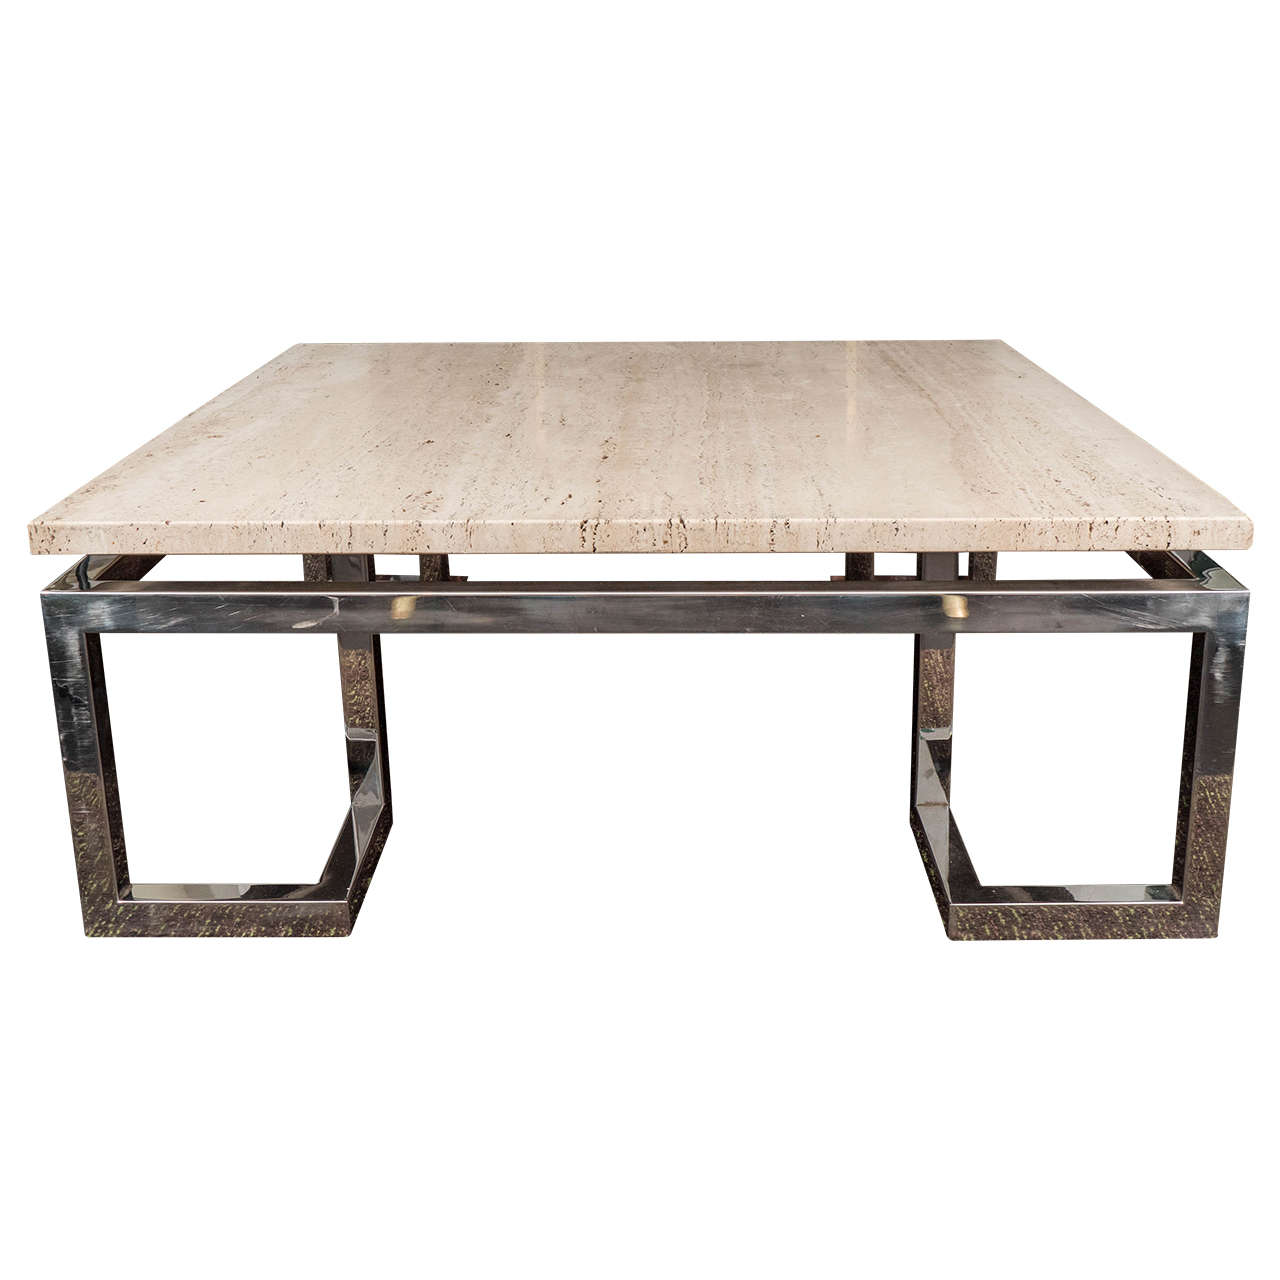 Large Greek Key Travertine Table